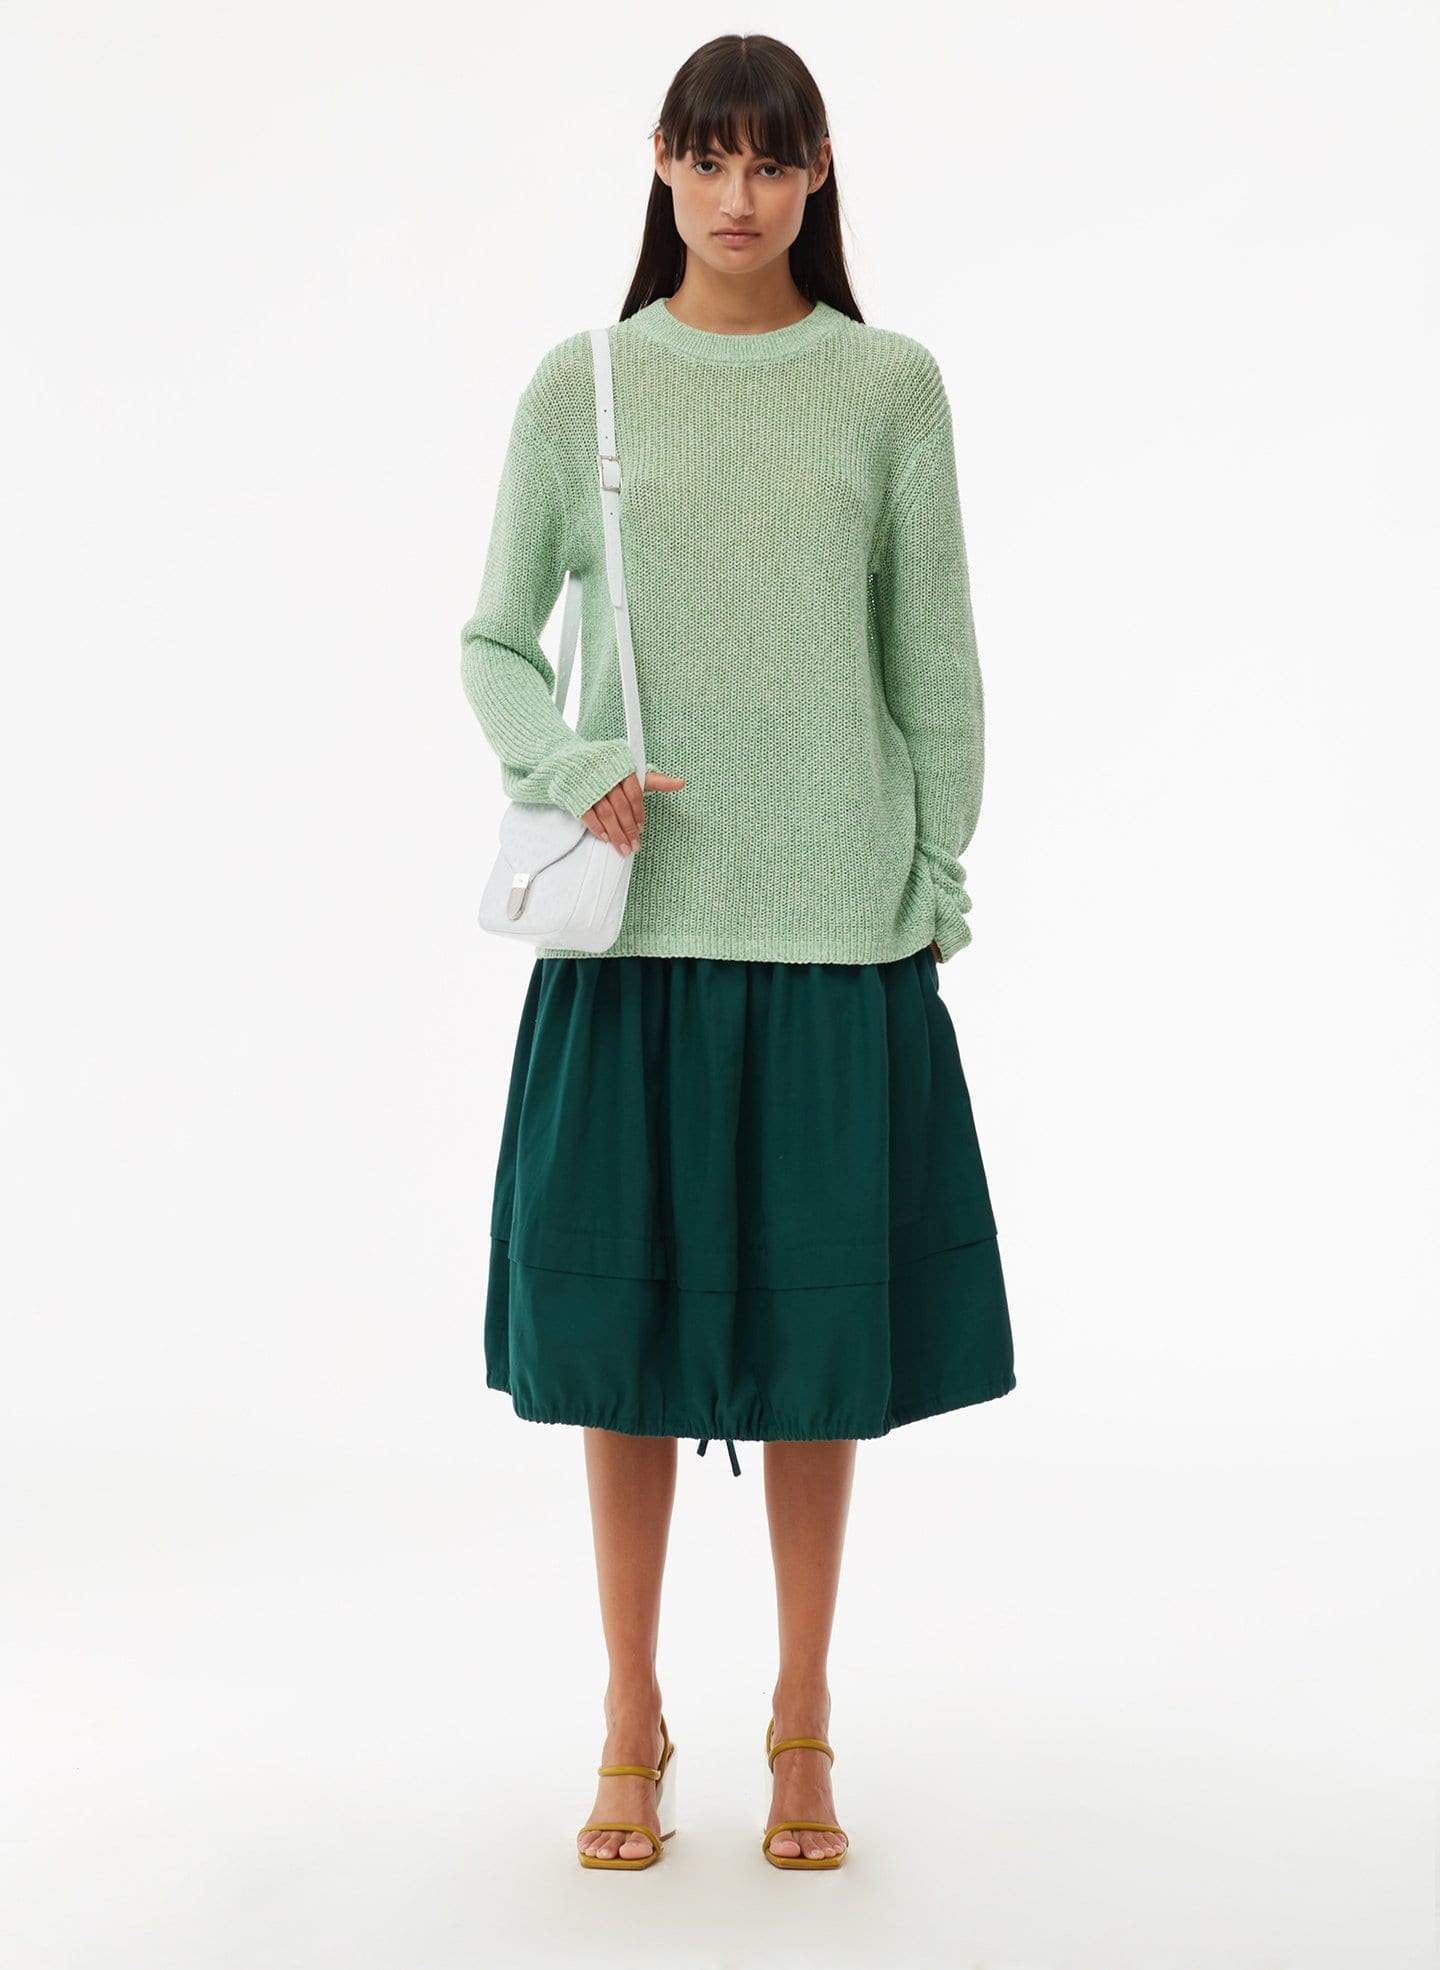 Tibi: End of Year Sale on sale! Extra 15% off Tibi outlet styles!